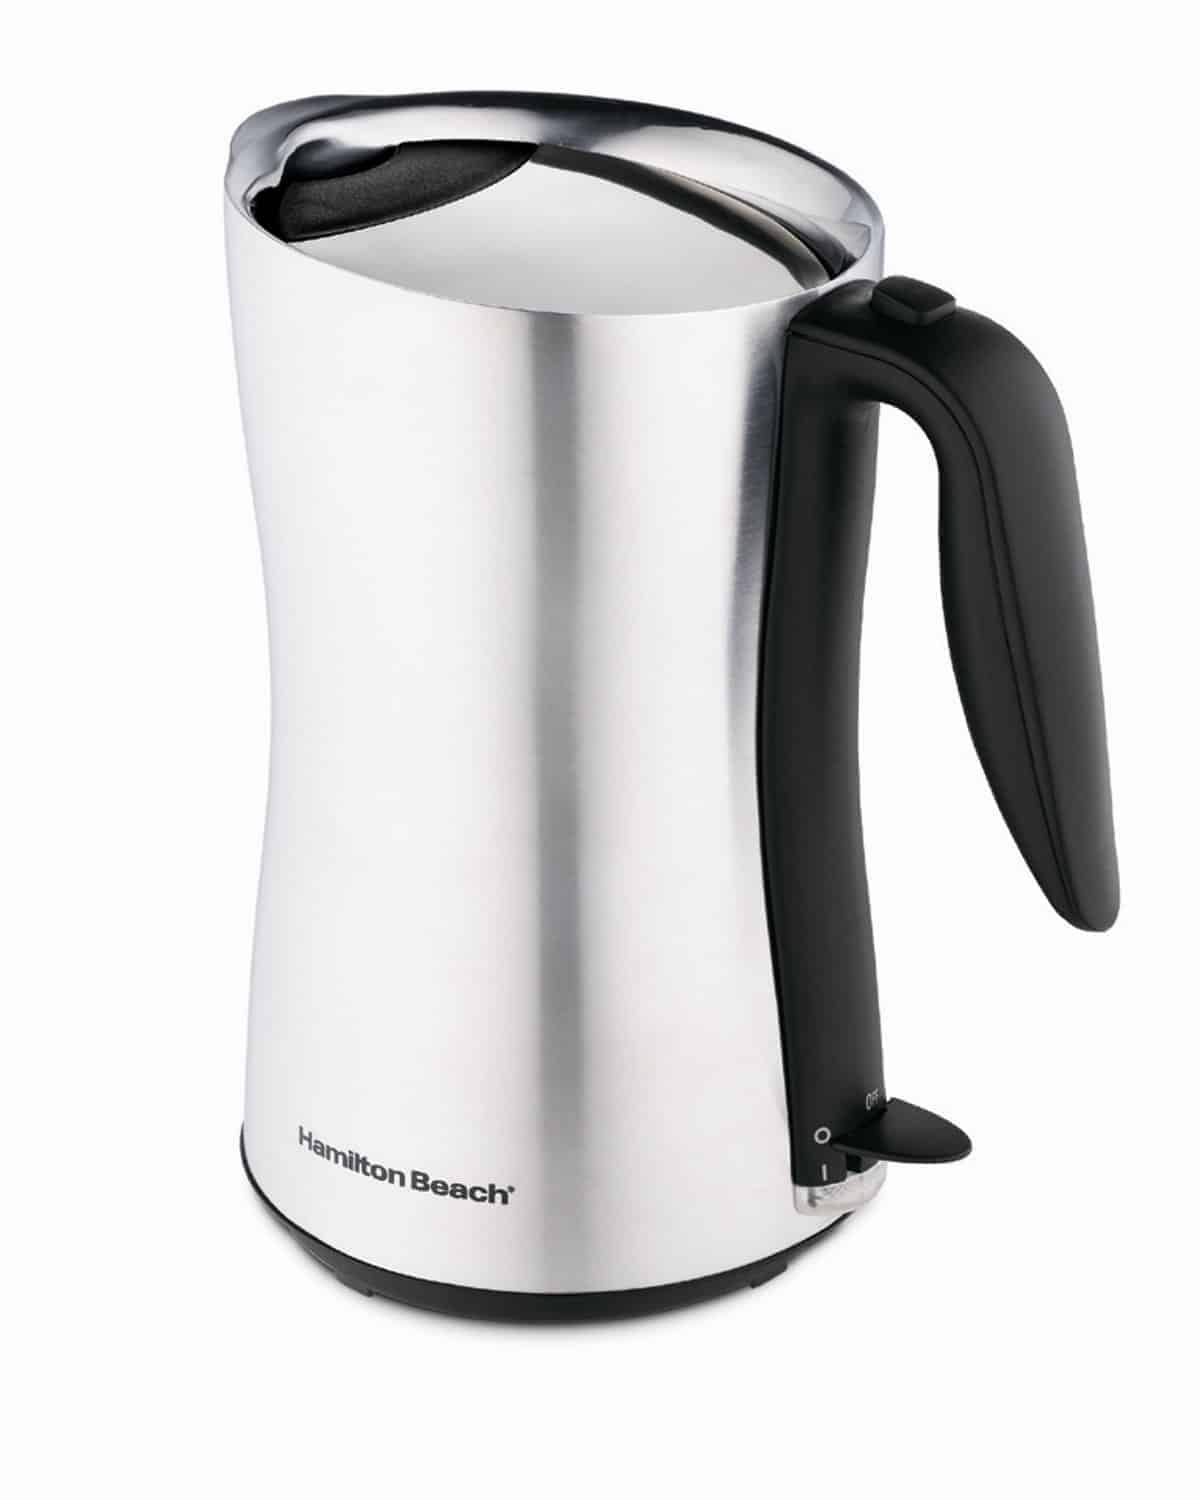 Hamilton Beach Cool Touch 8-Cup Cordless Electric Kettle